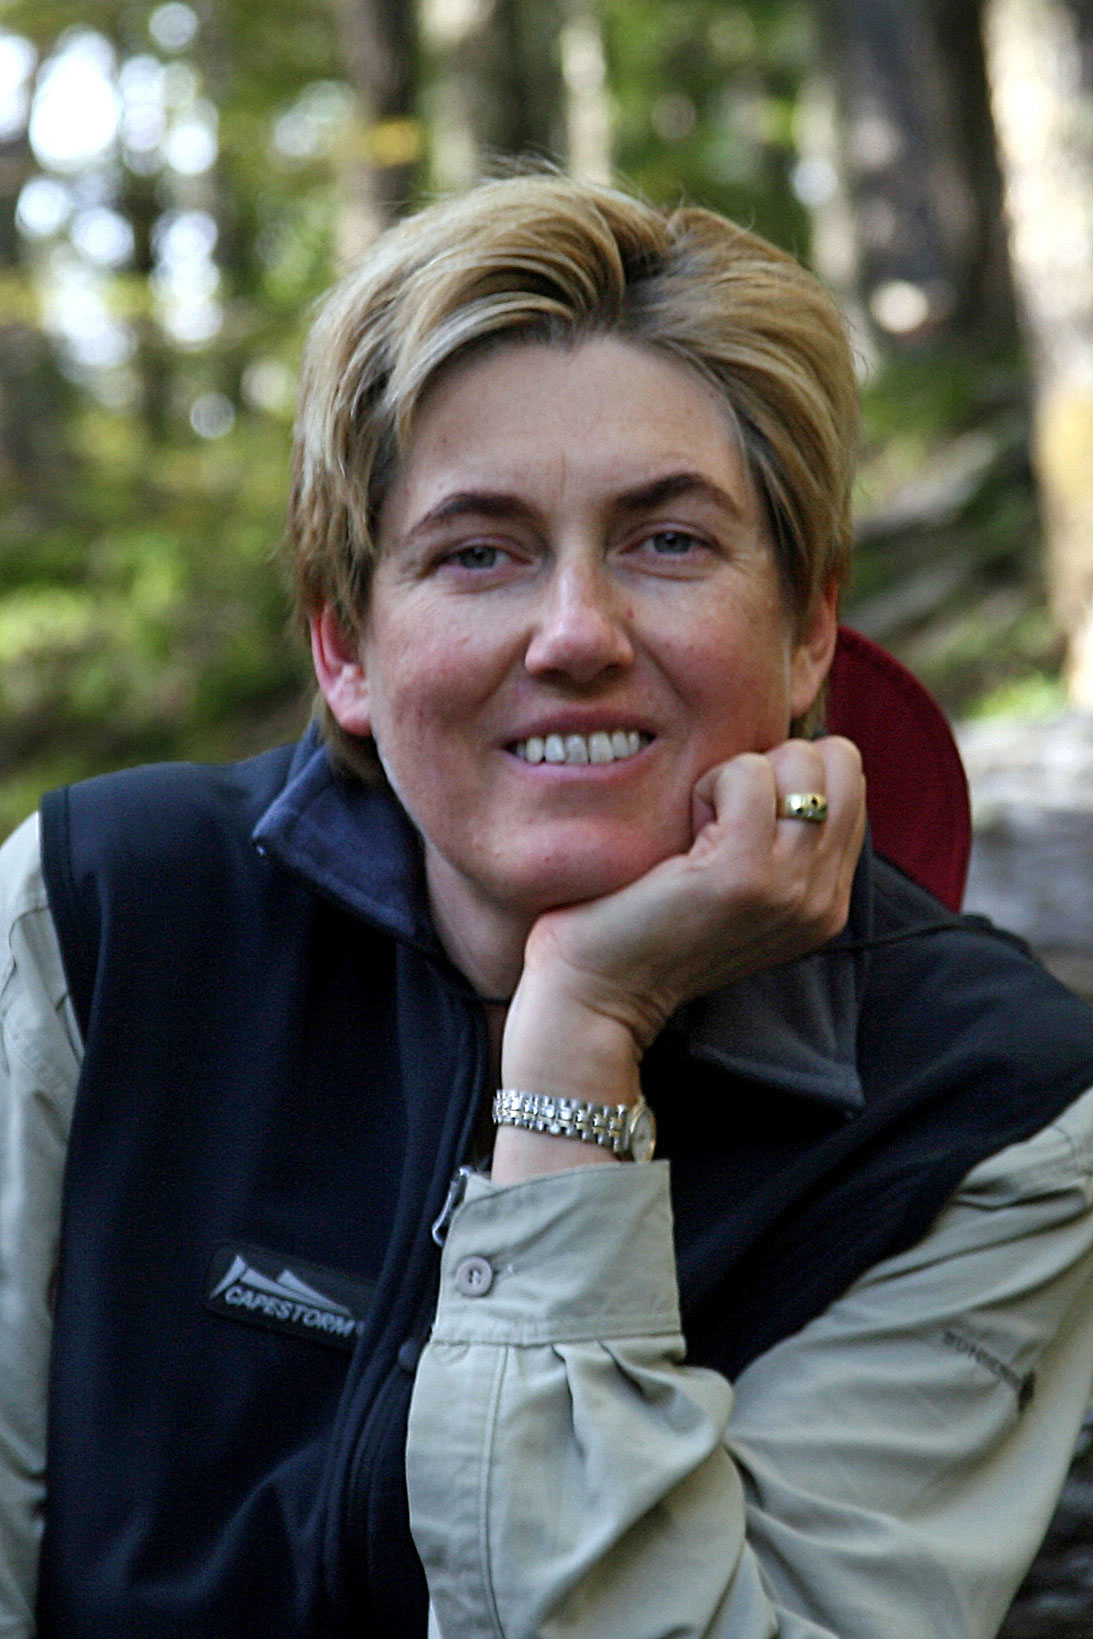 Darrell Farrow sat outside in a green forest, smiling at the camera with her chin propped up on her hand